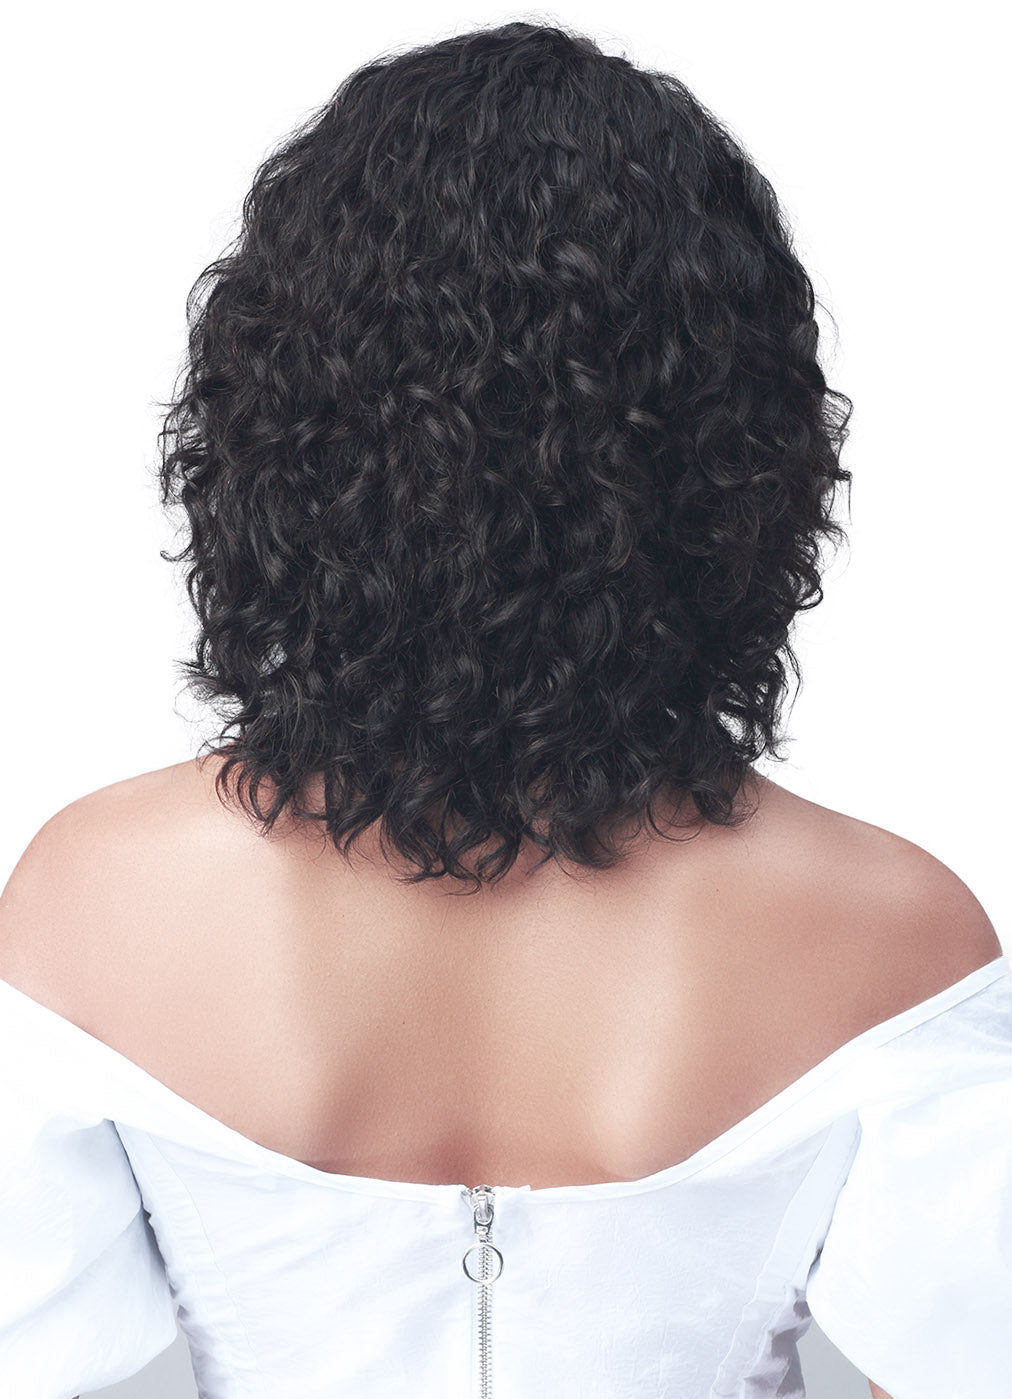 Bobbi Boss 100% Unprocessed Human Hair Wet & Wavy Wig MH1300 TERESA